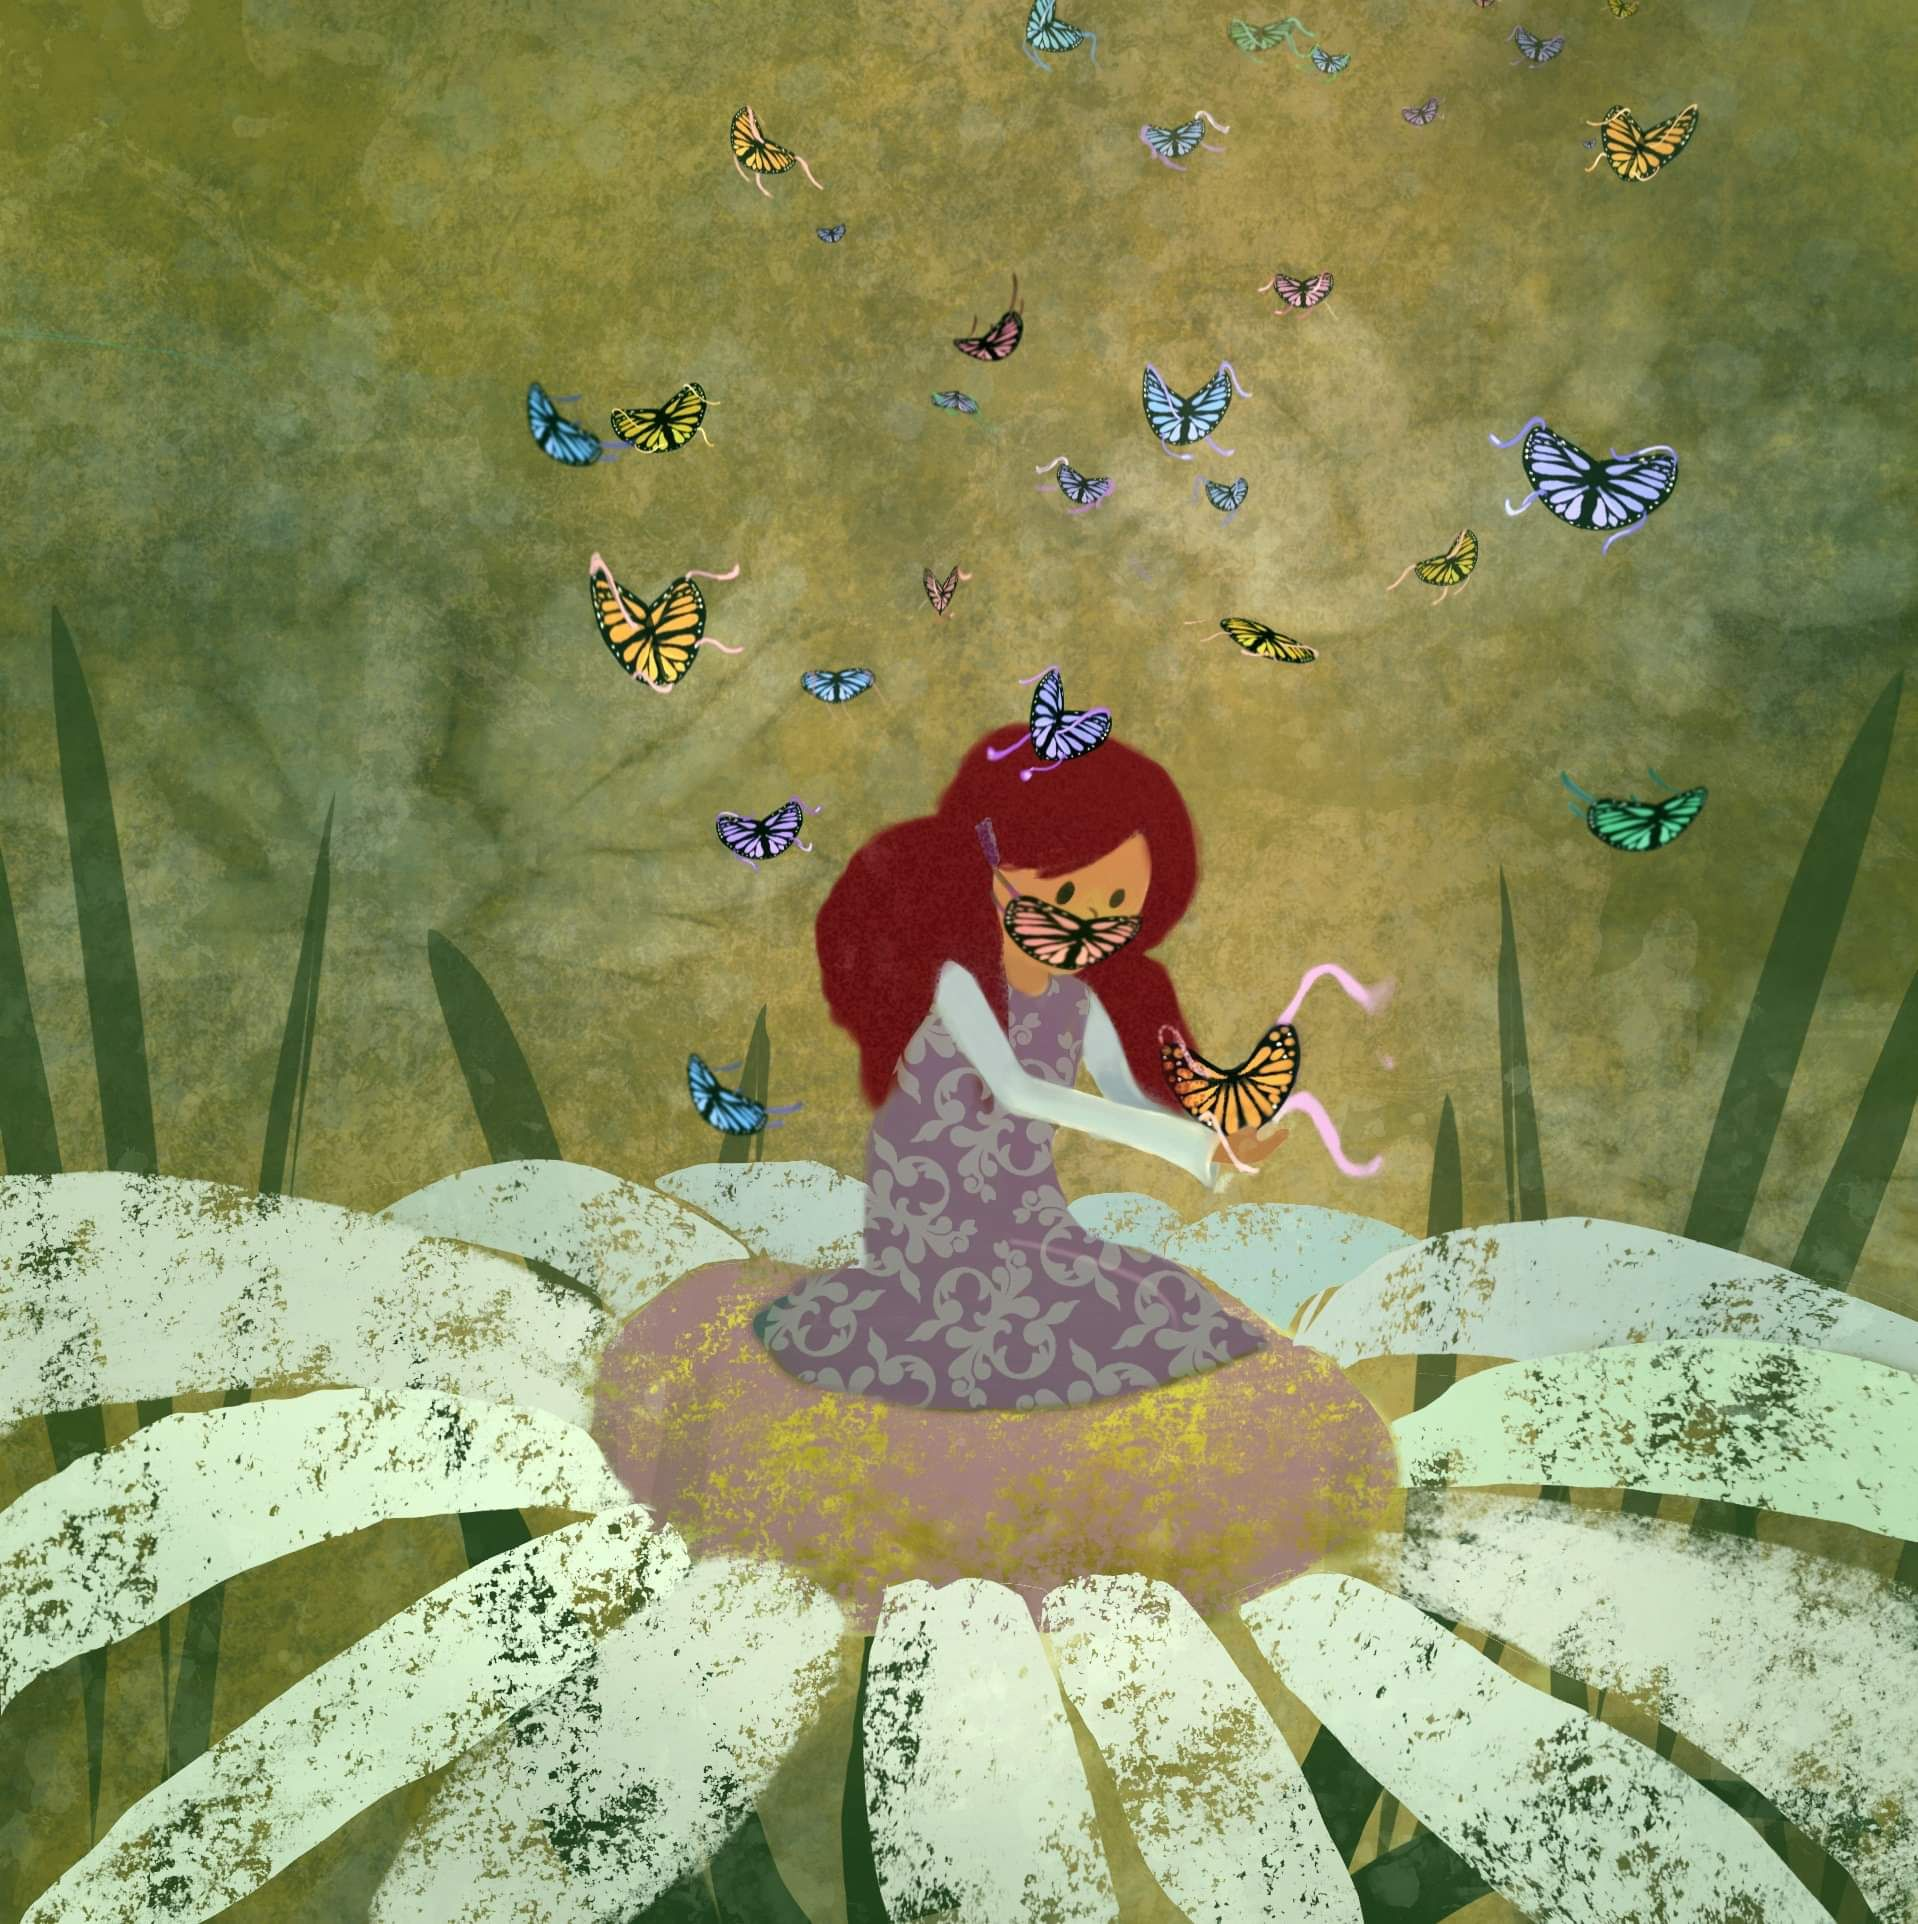 received_1171828723209536.jpeg